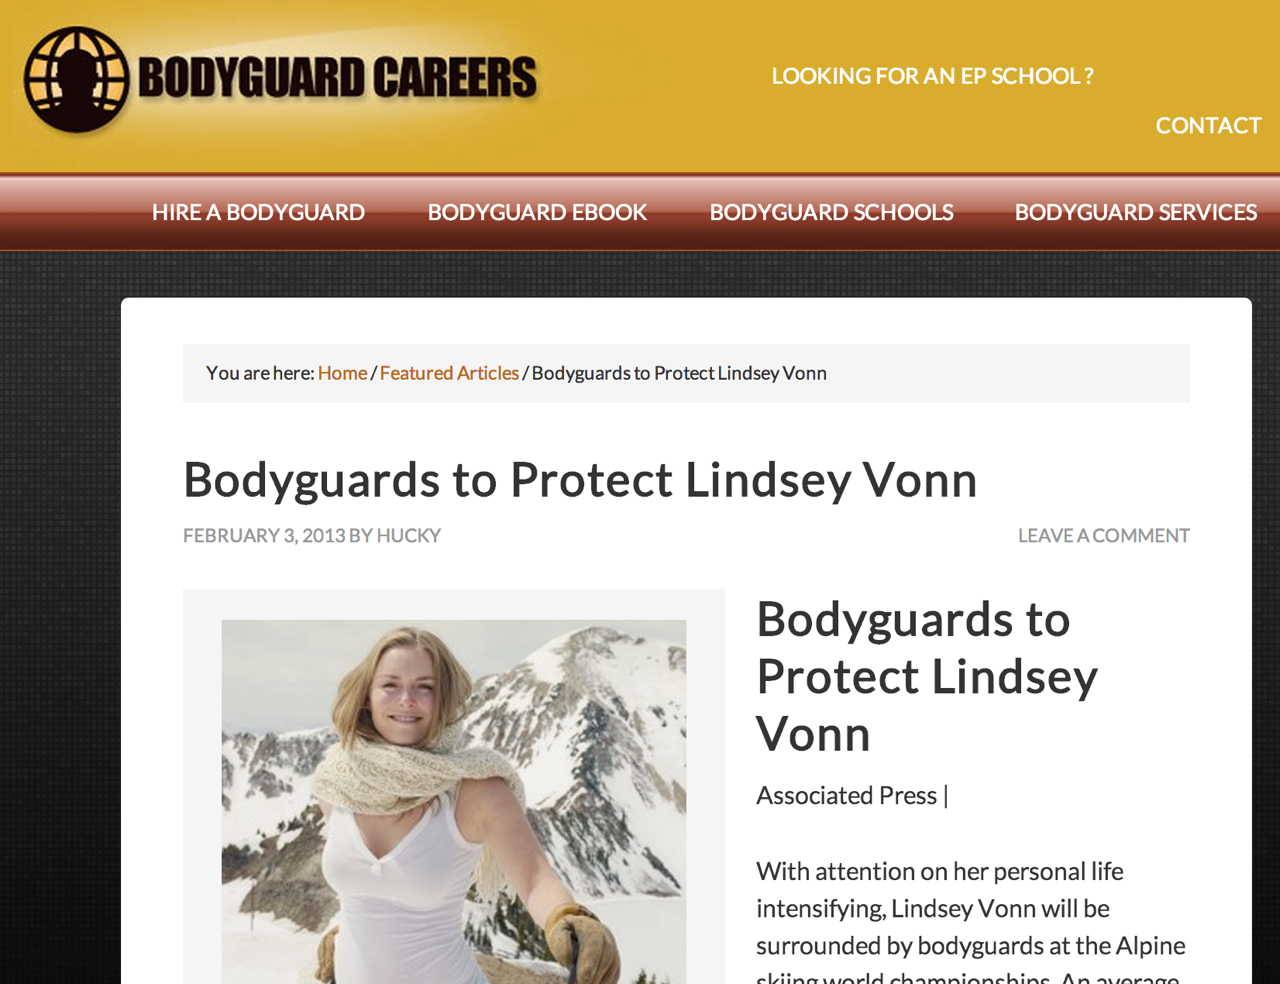 Bodyguards to Protect Lindsey Vonn